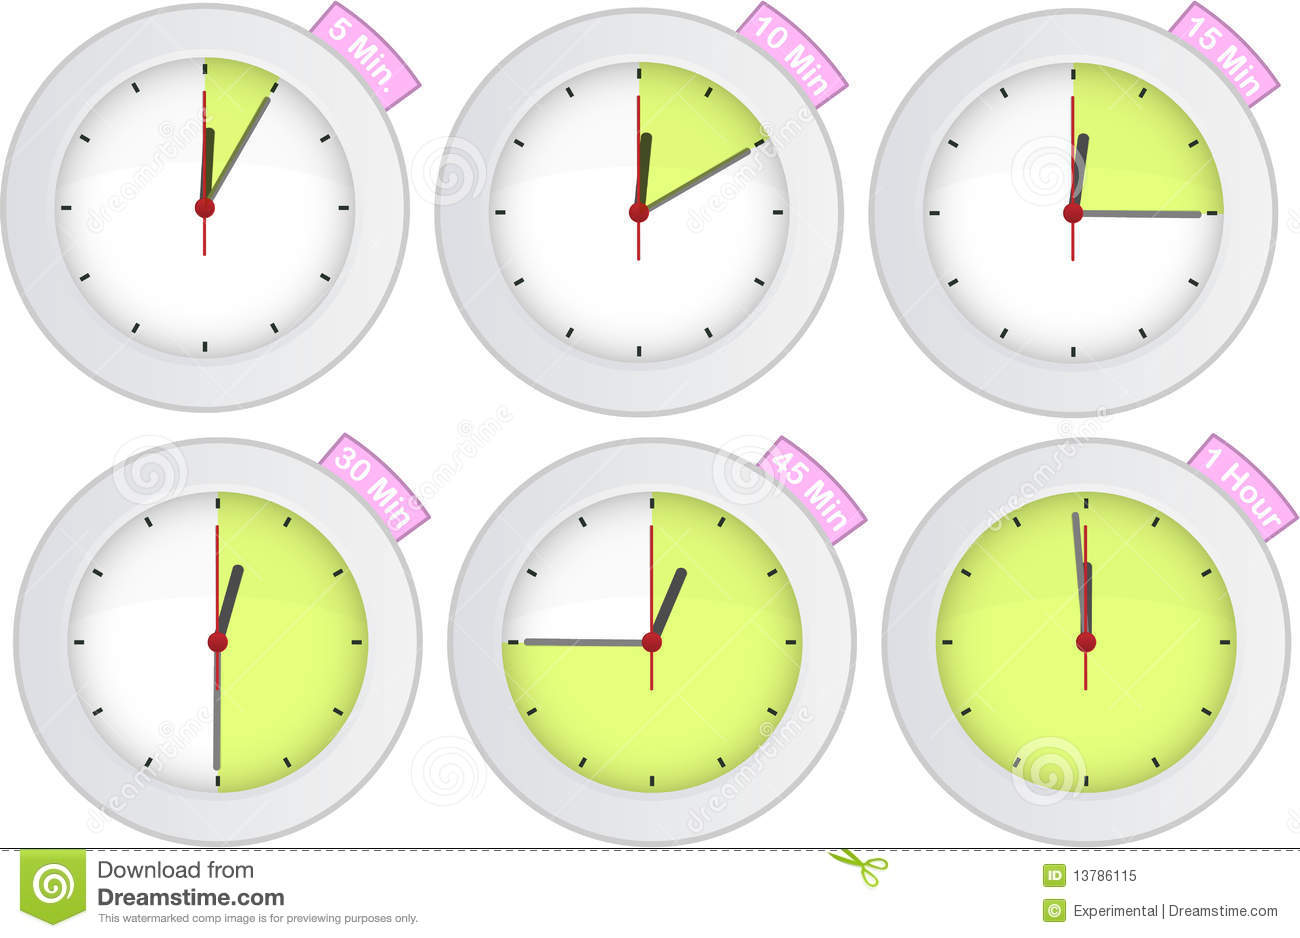 30 Minute Timer Clipart Timer Clock With 5 10 15 30 45